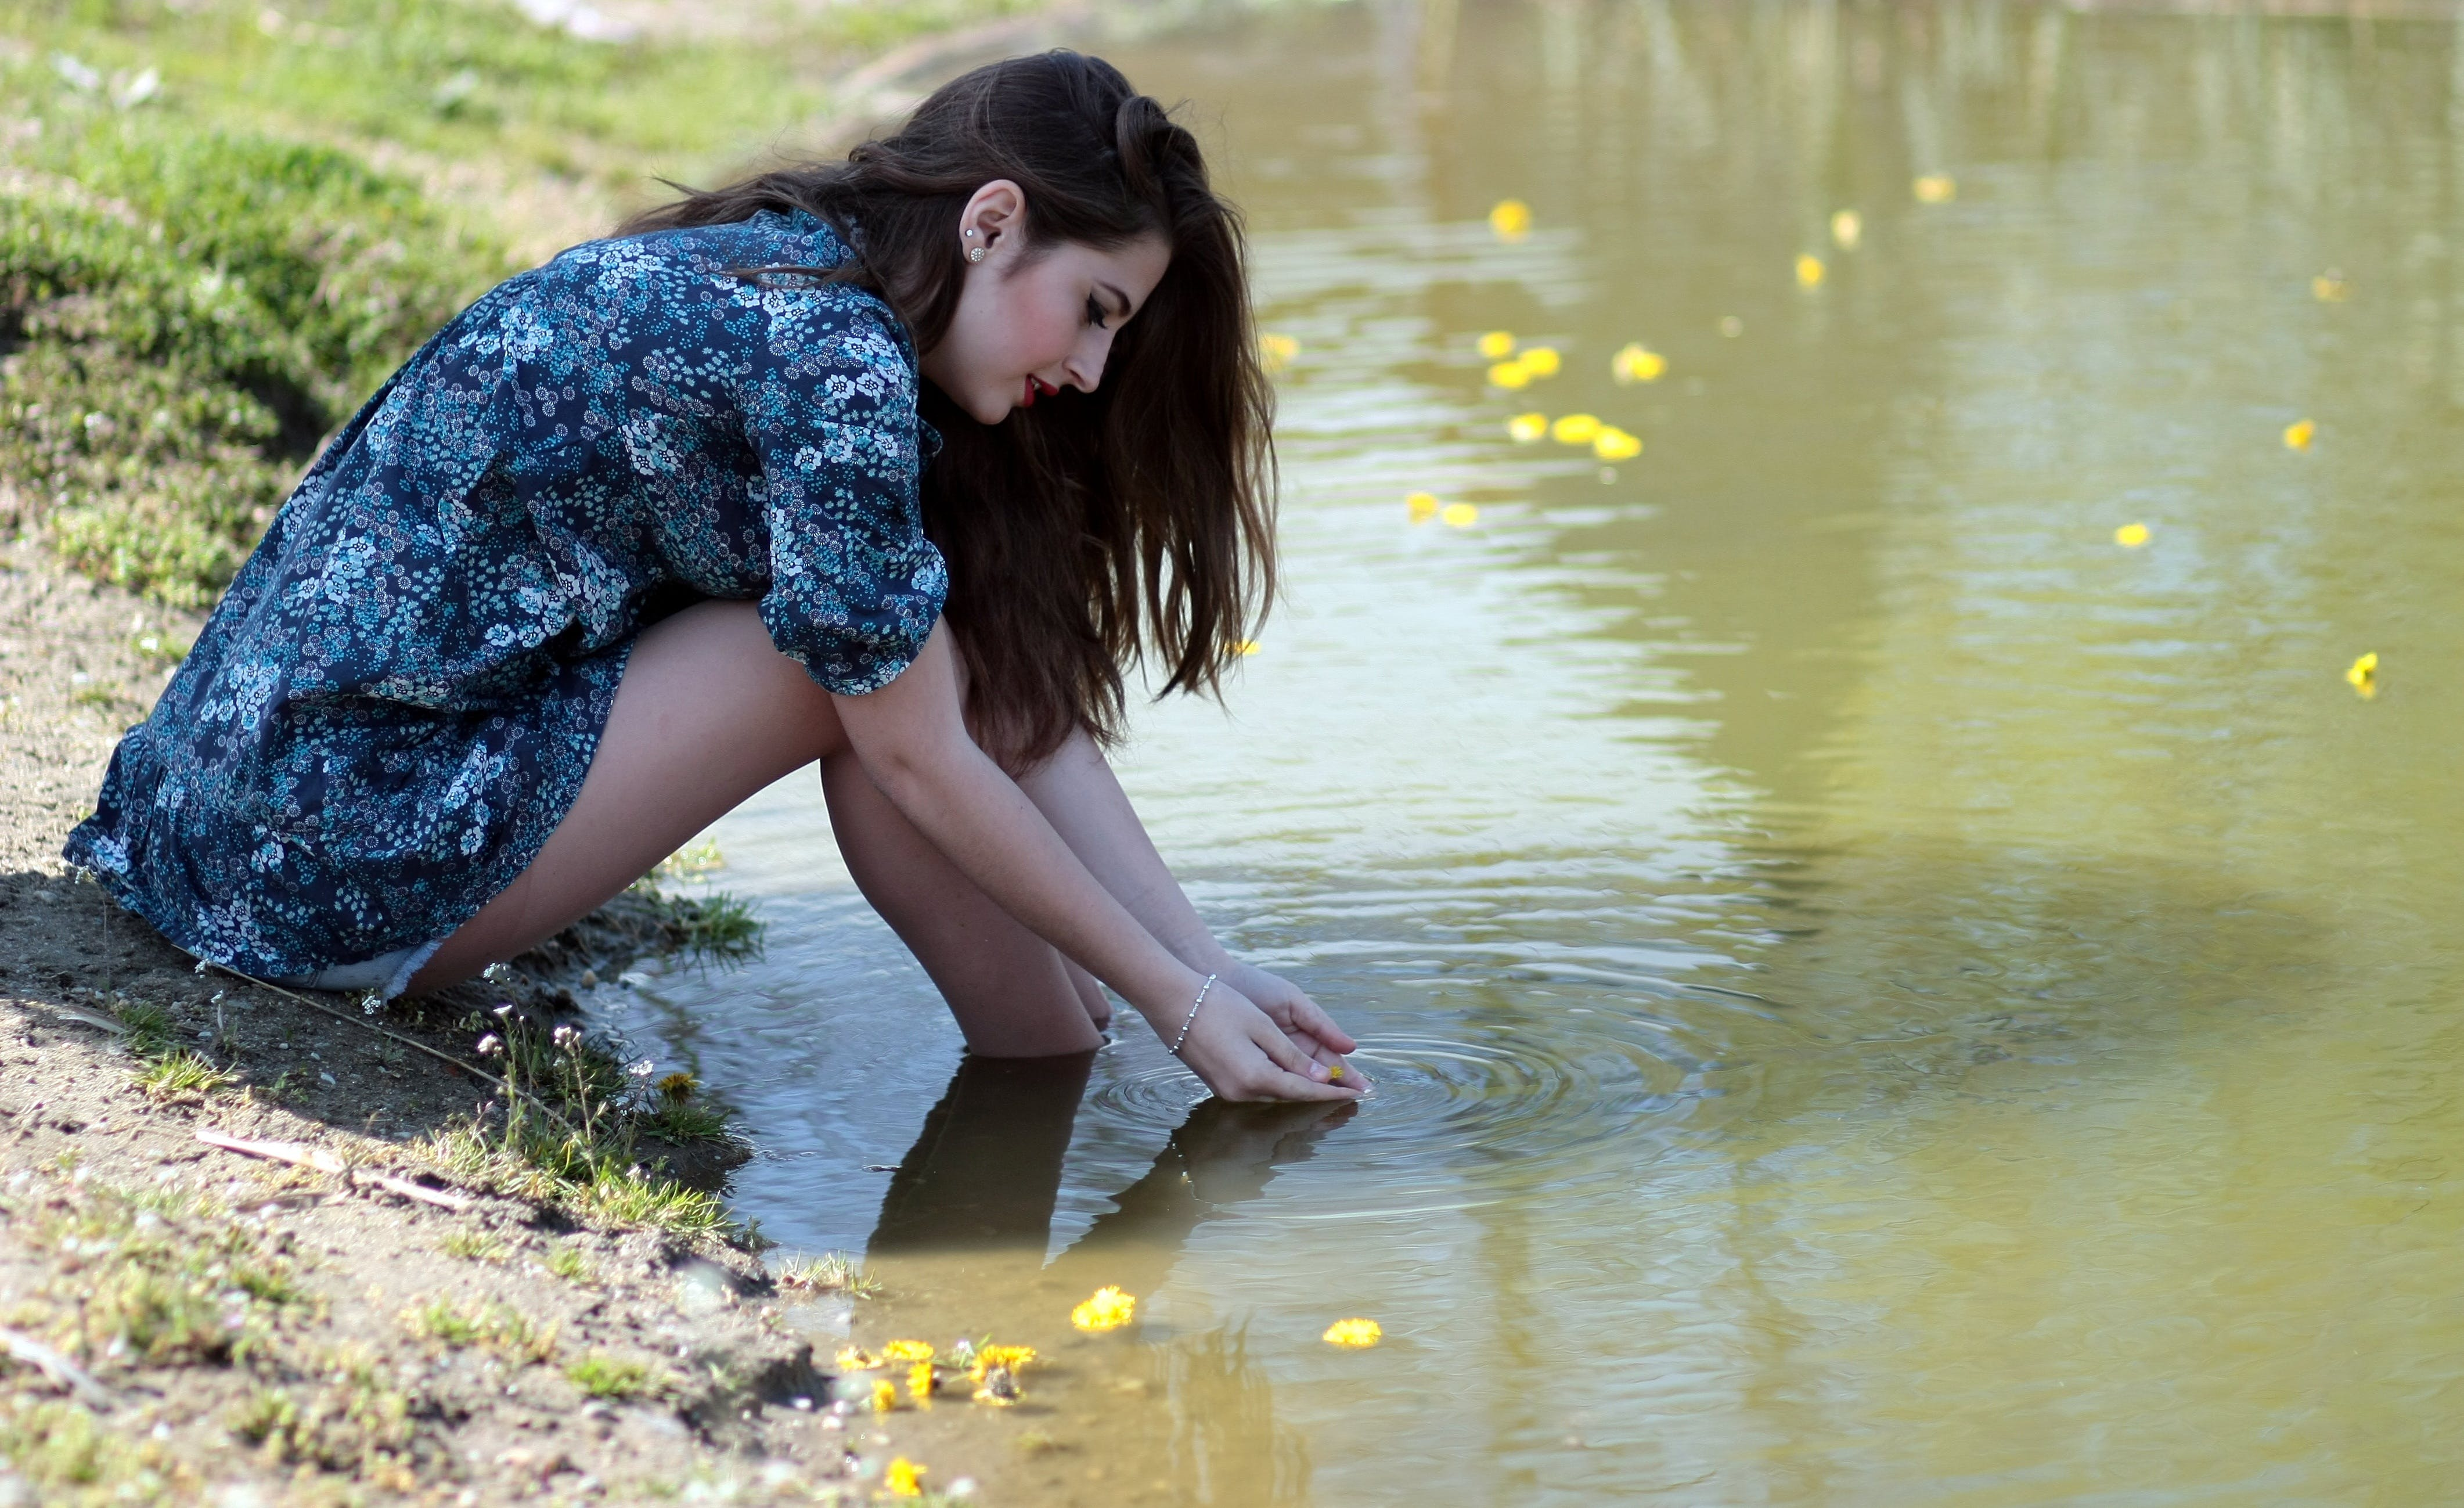 Woman Soaking Her Feet on Body of Water during Daytime